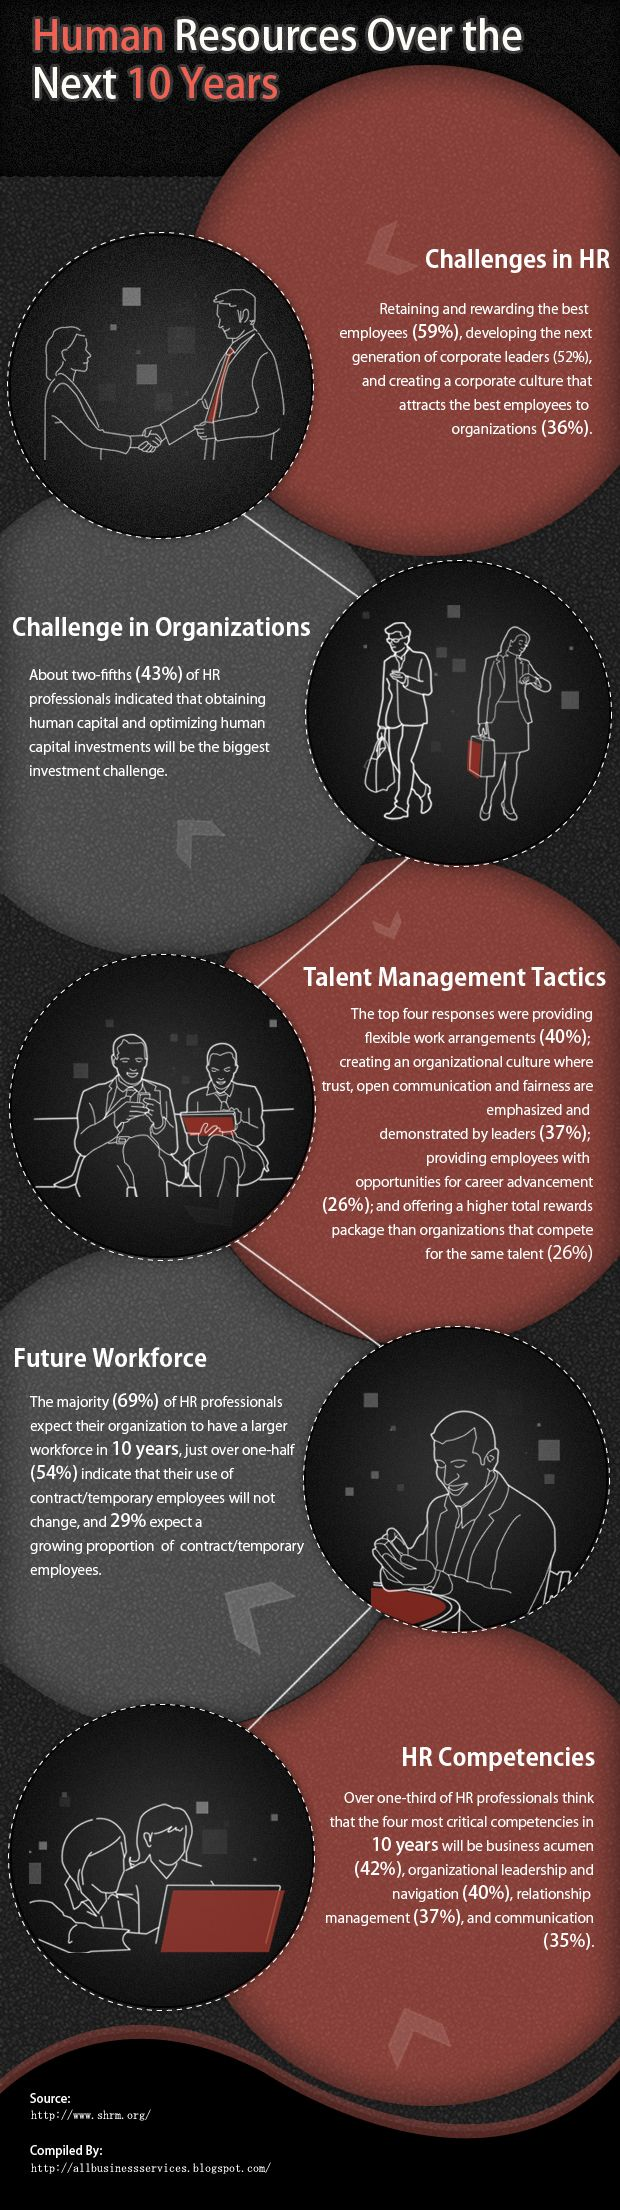 Human Resources Over the Next 10 Years #Infographic